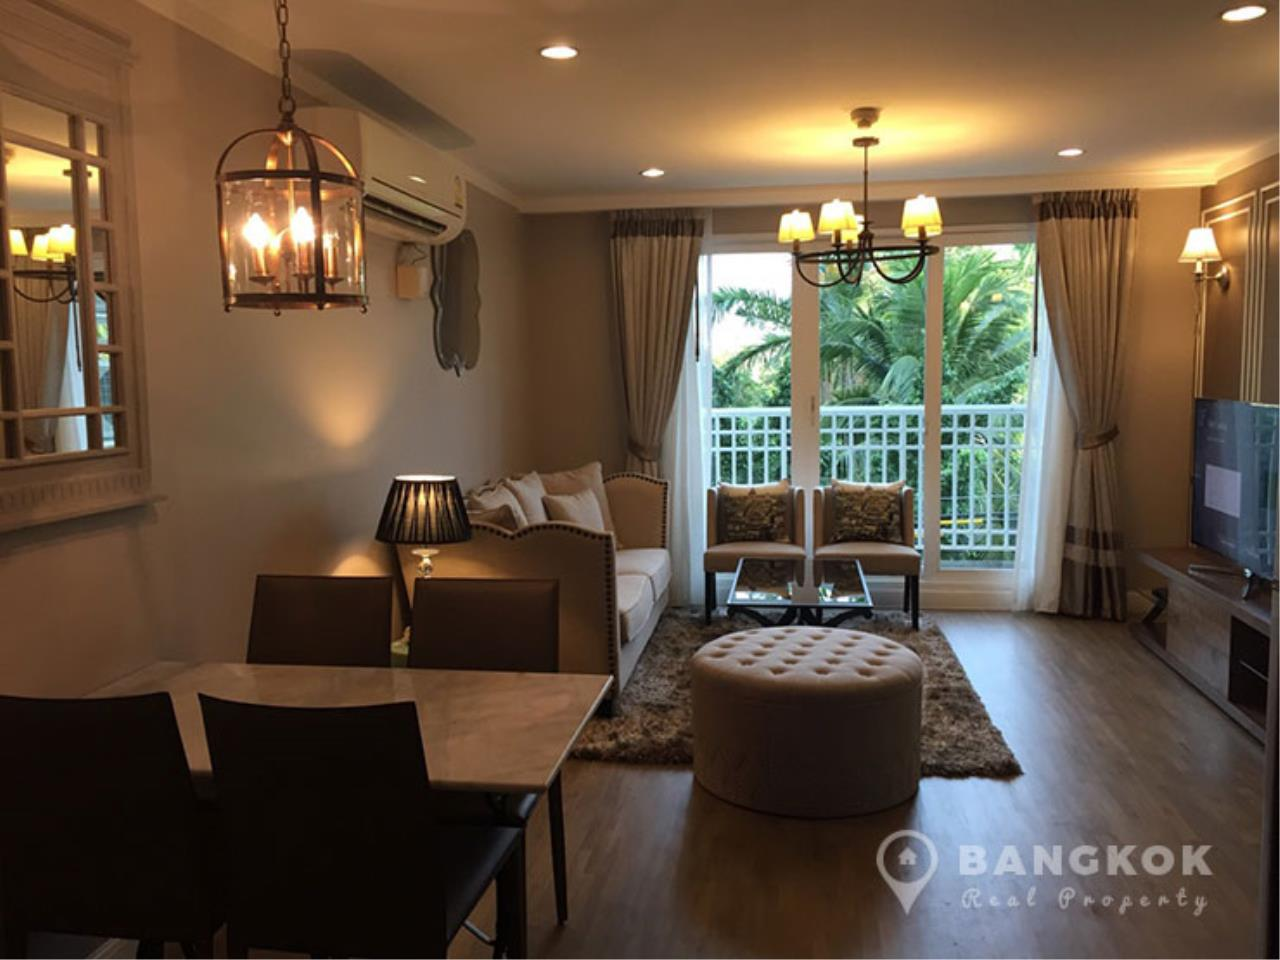 Bangkok Real Property Agency's Baan Siri Yenakard | Spacious Renovated 2 Bed 2 Bath near MRT  5